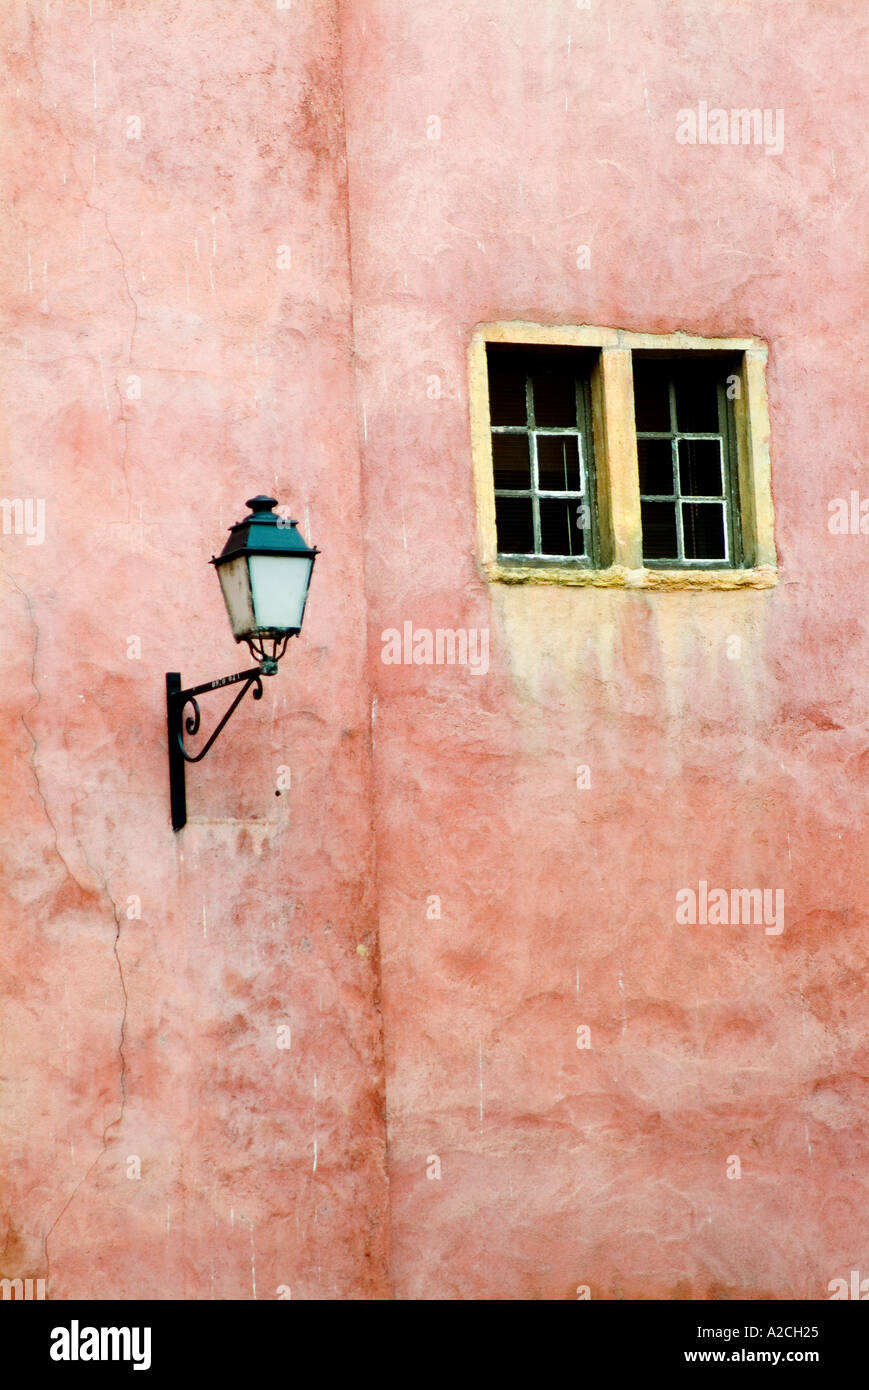 A red brick wall with a couple of windows and an old gas type light seperated by an indent in the wall Stock Photo